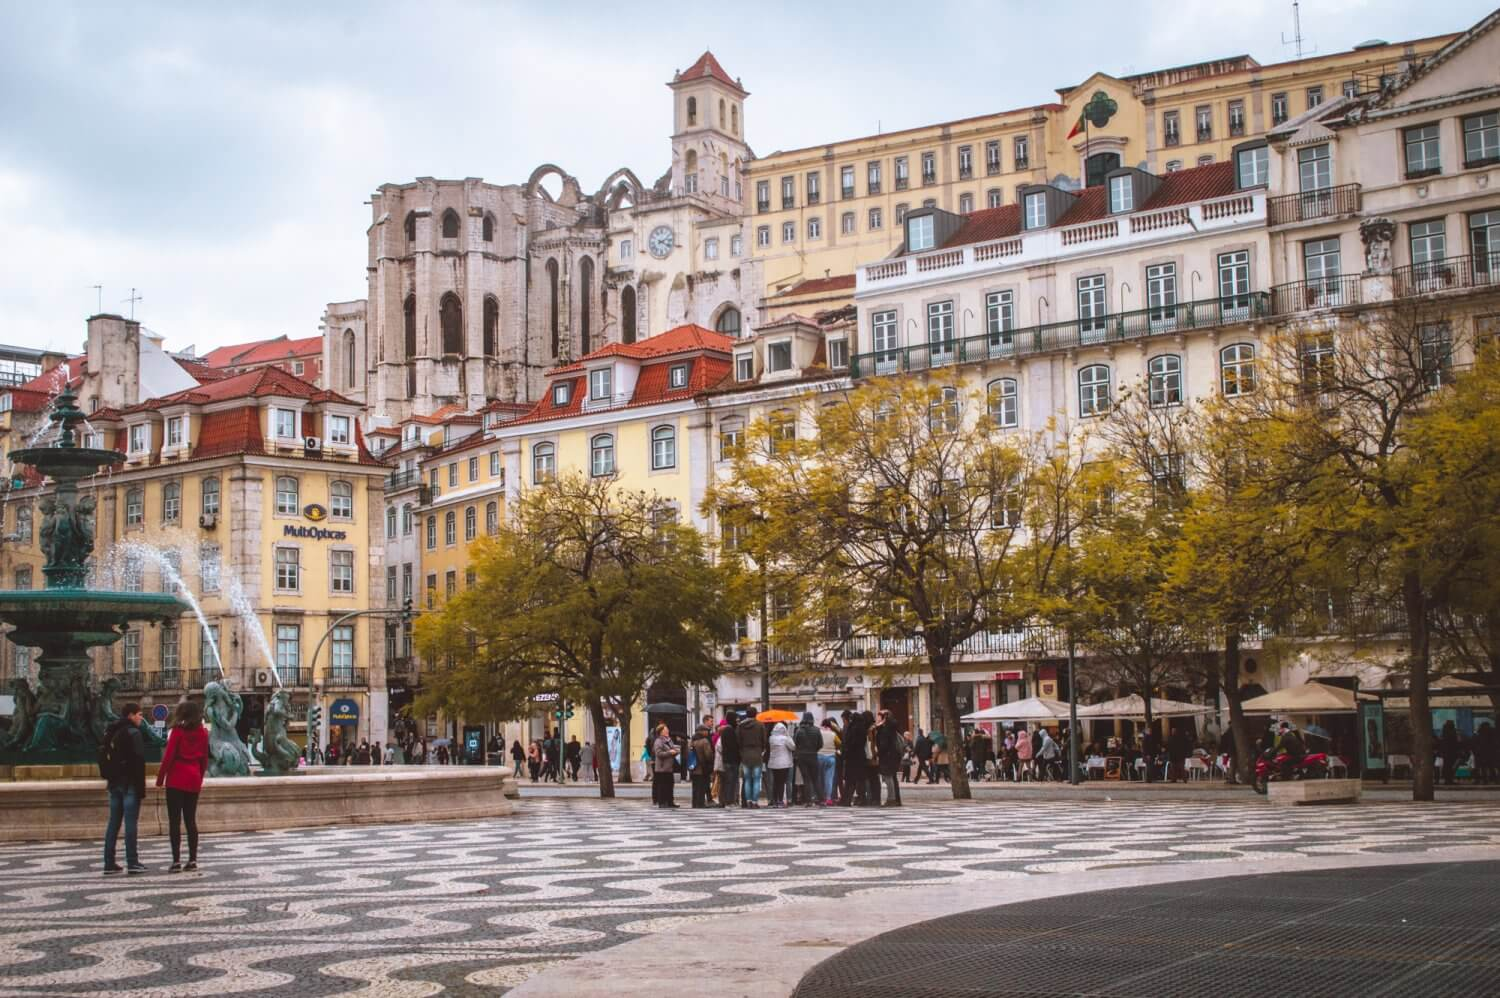 A beautiful shot of Lisbon's main square looking up to the Carmo Convent ruins